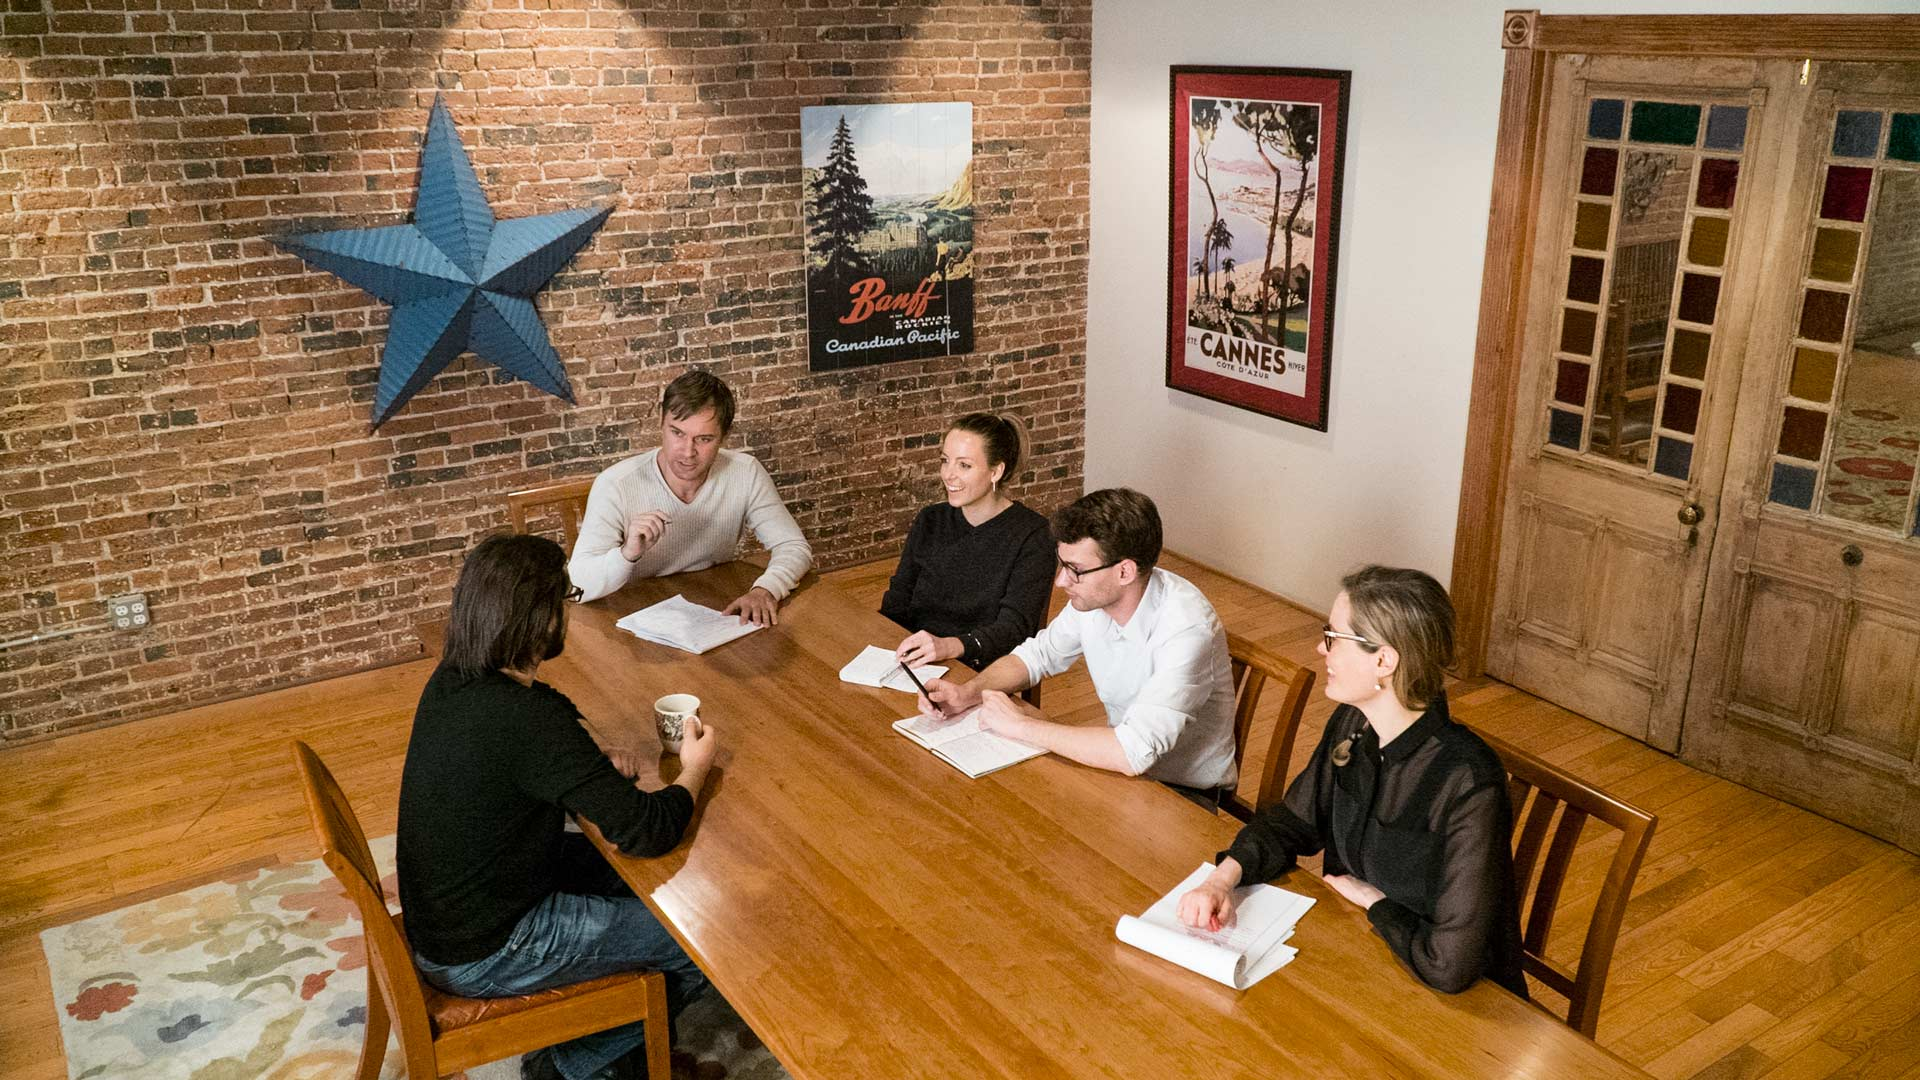 The conference room serves as a  central hub for production meetings